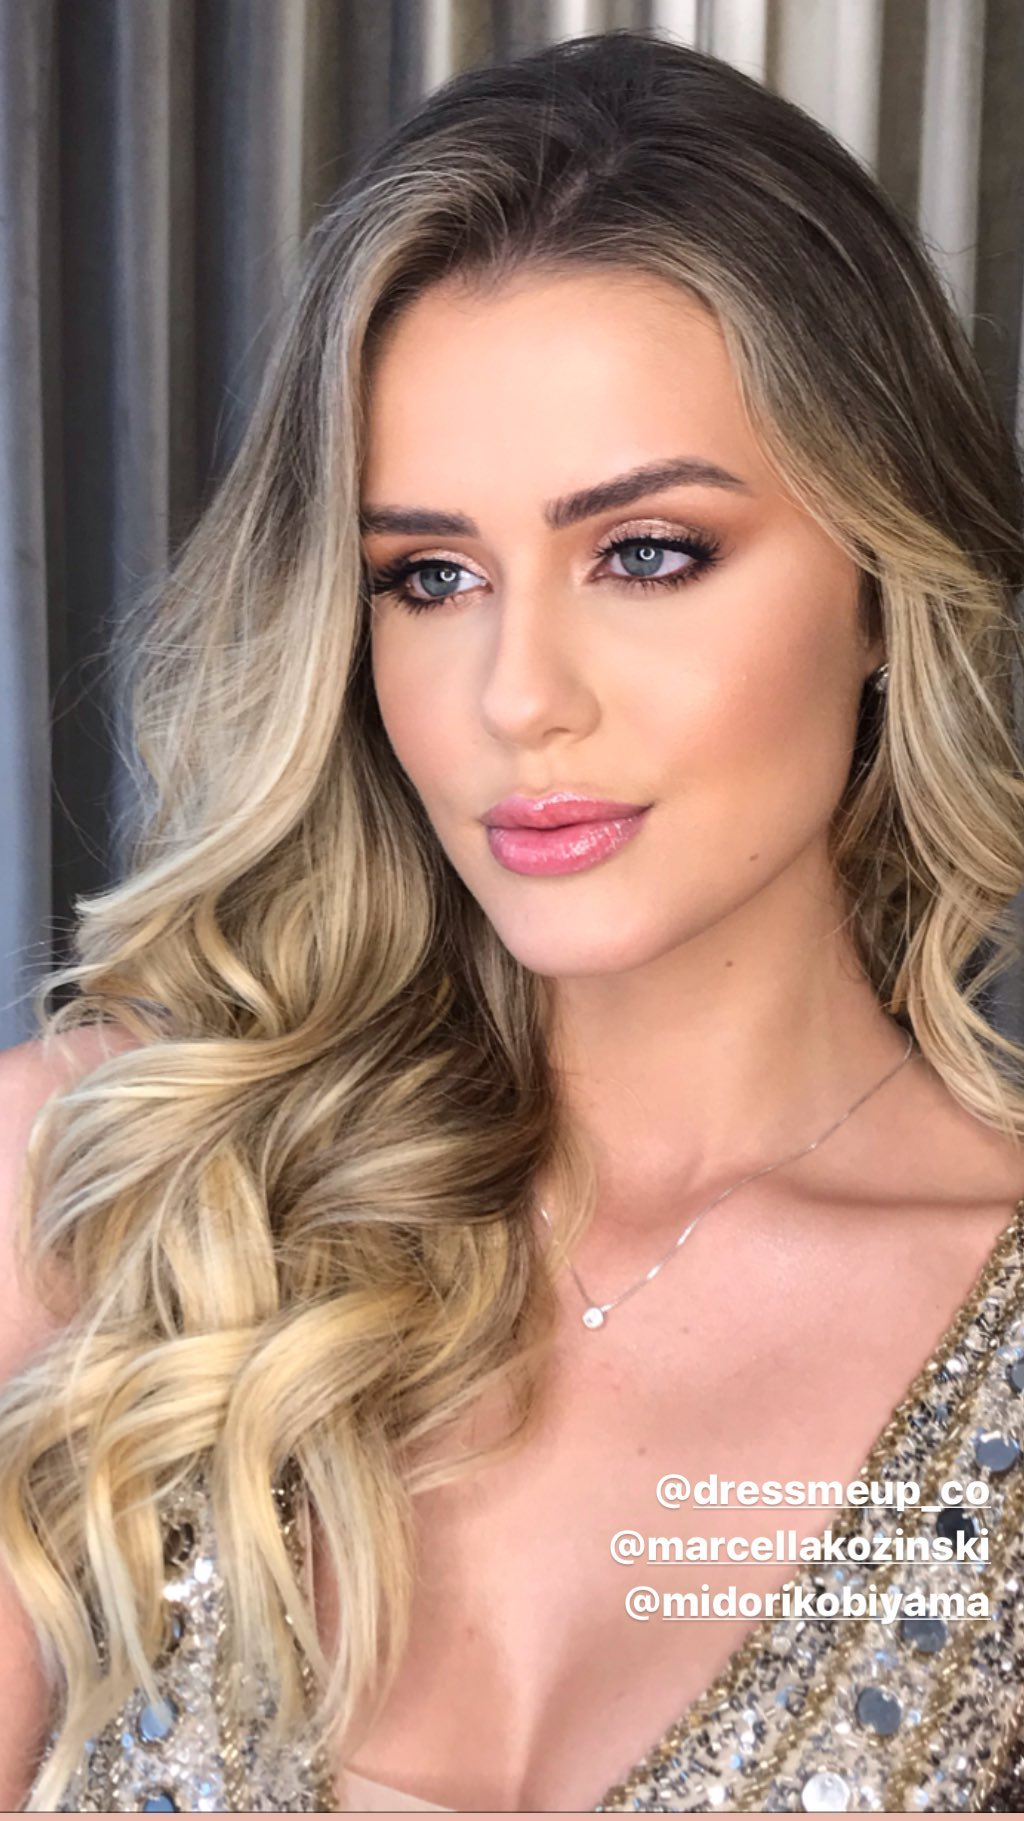 marcella kozinski de barros, miss curitiba 2020/3rd runner-up de miss tourism world 2019. - Página 7 Alex-759